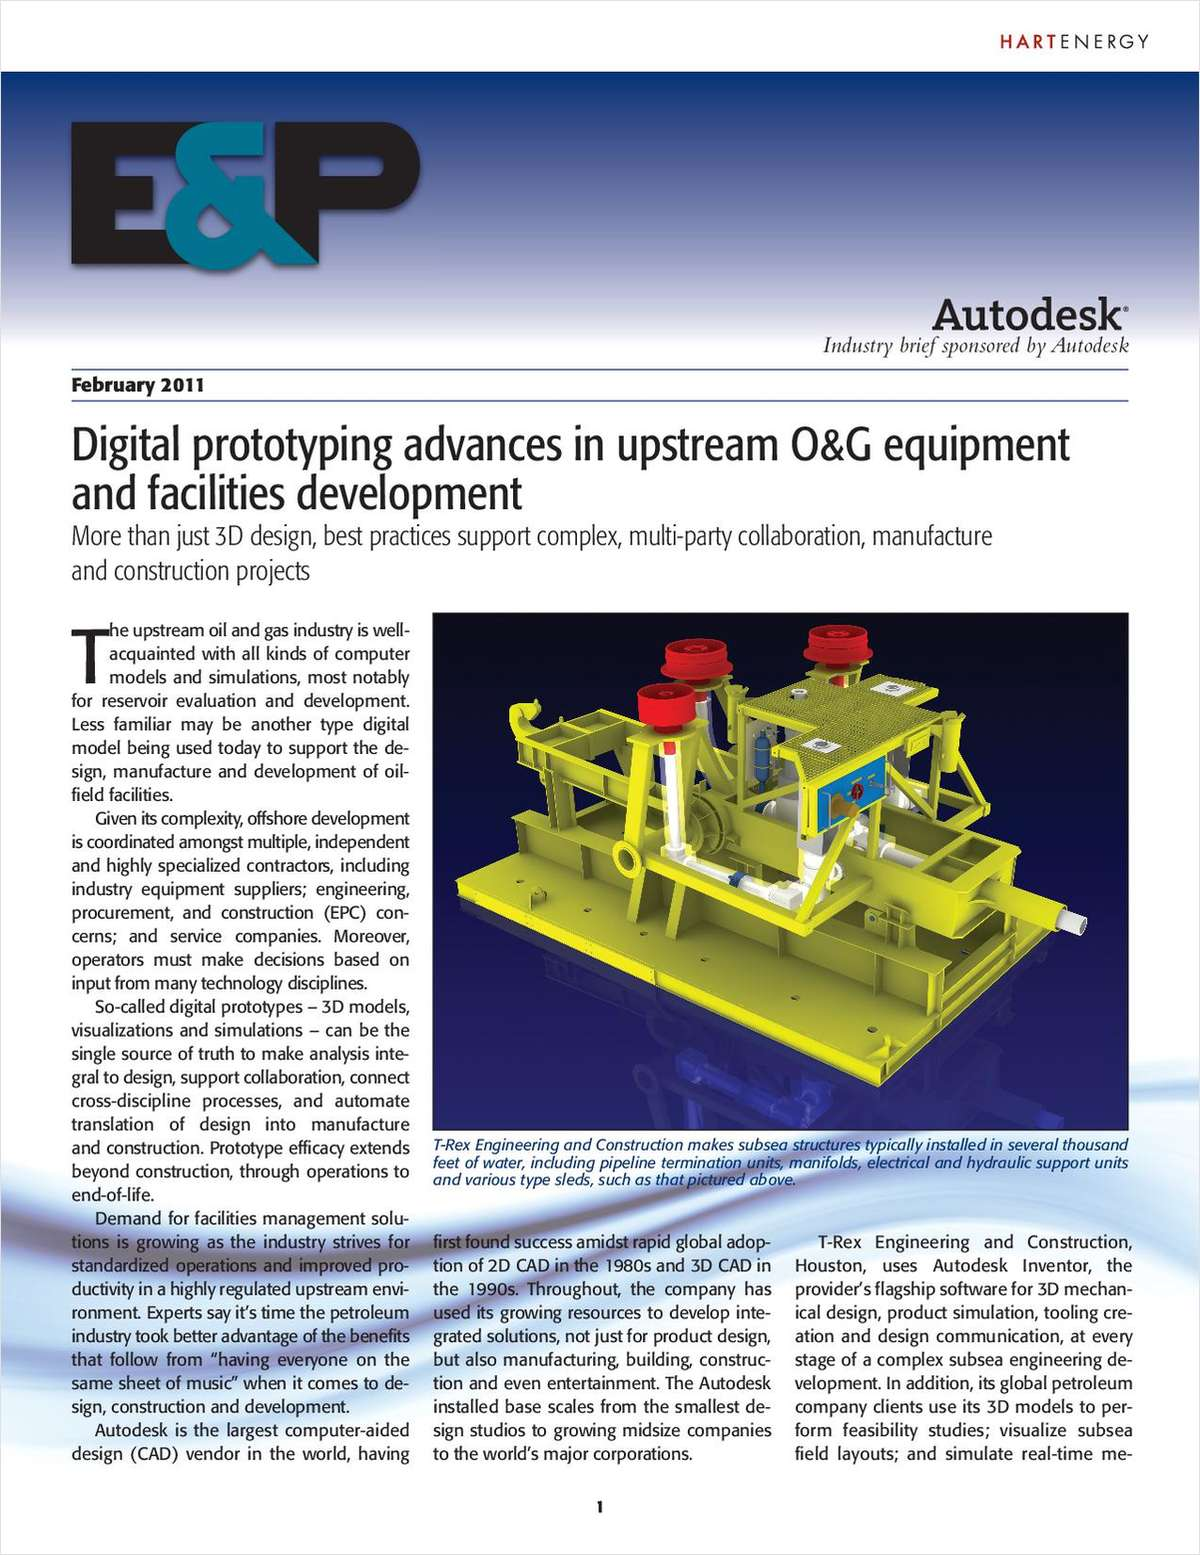 Best practices in upstream O&G equipment and facilities development